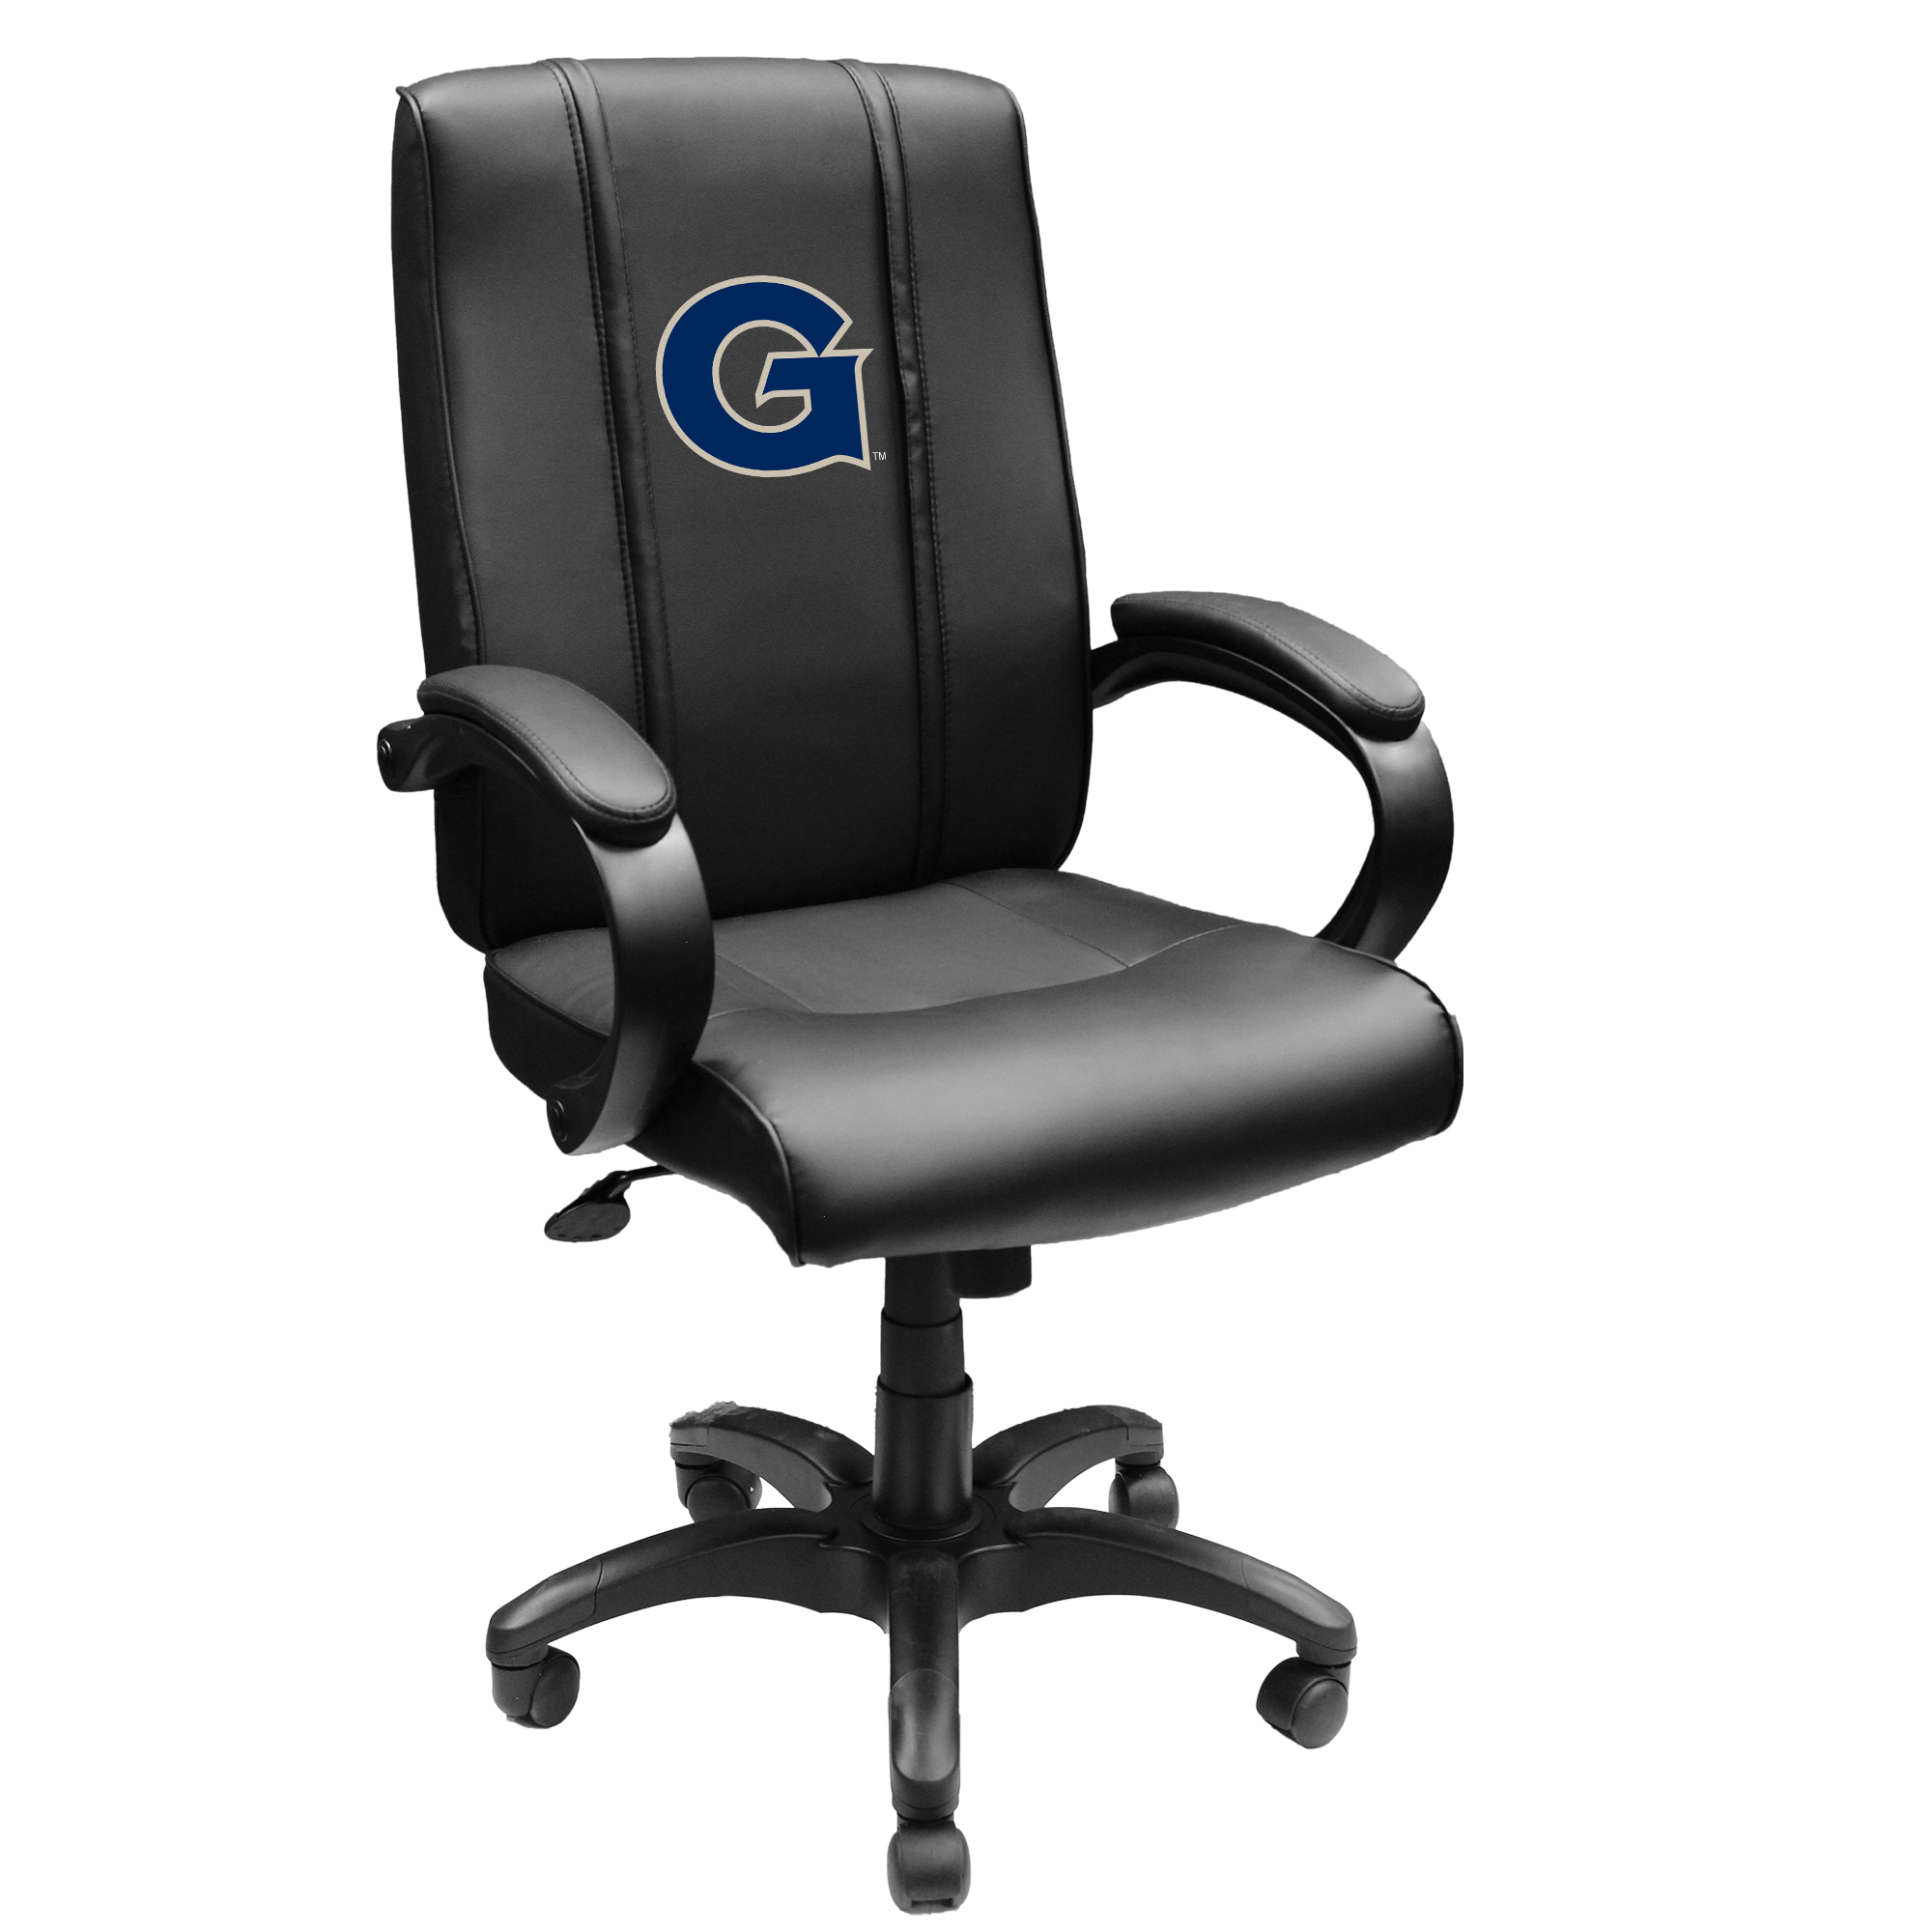 Office Chair 1000 with Georgetown Hoyas Primary